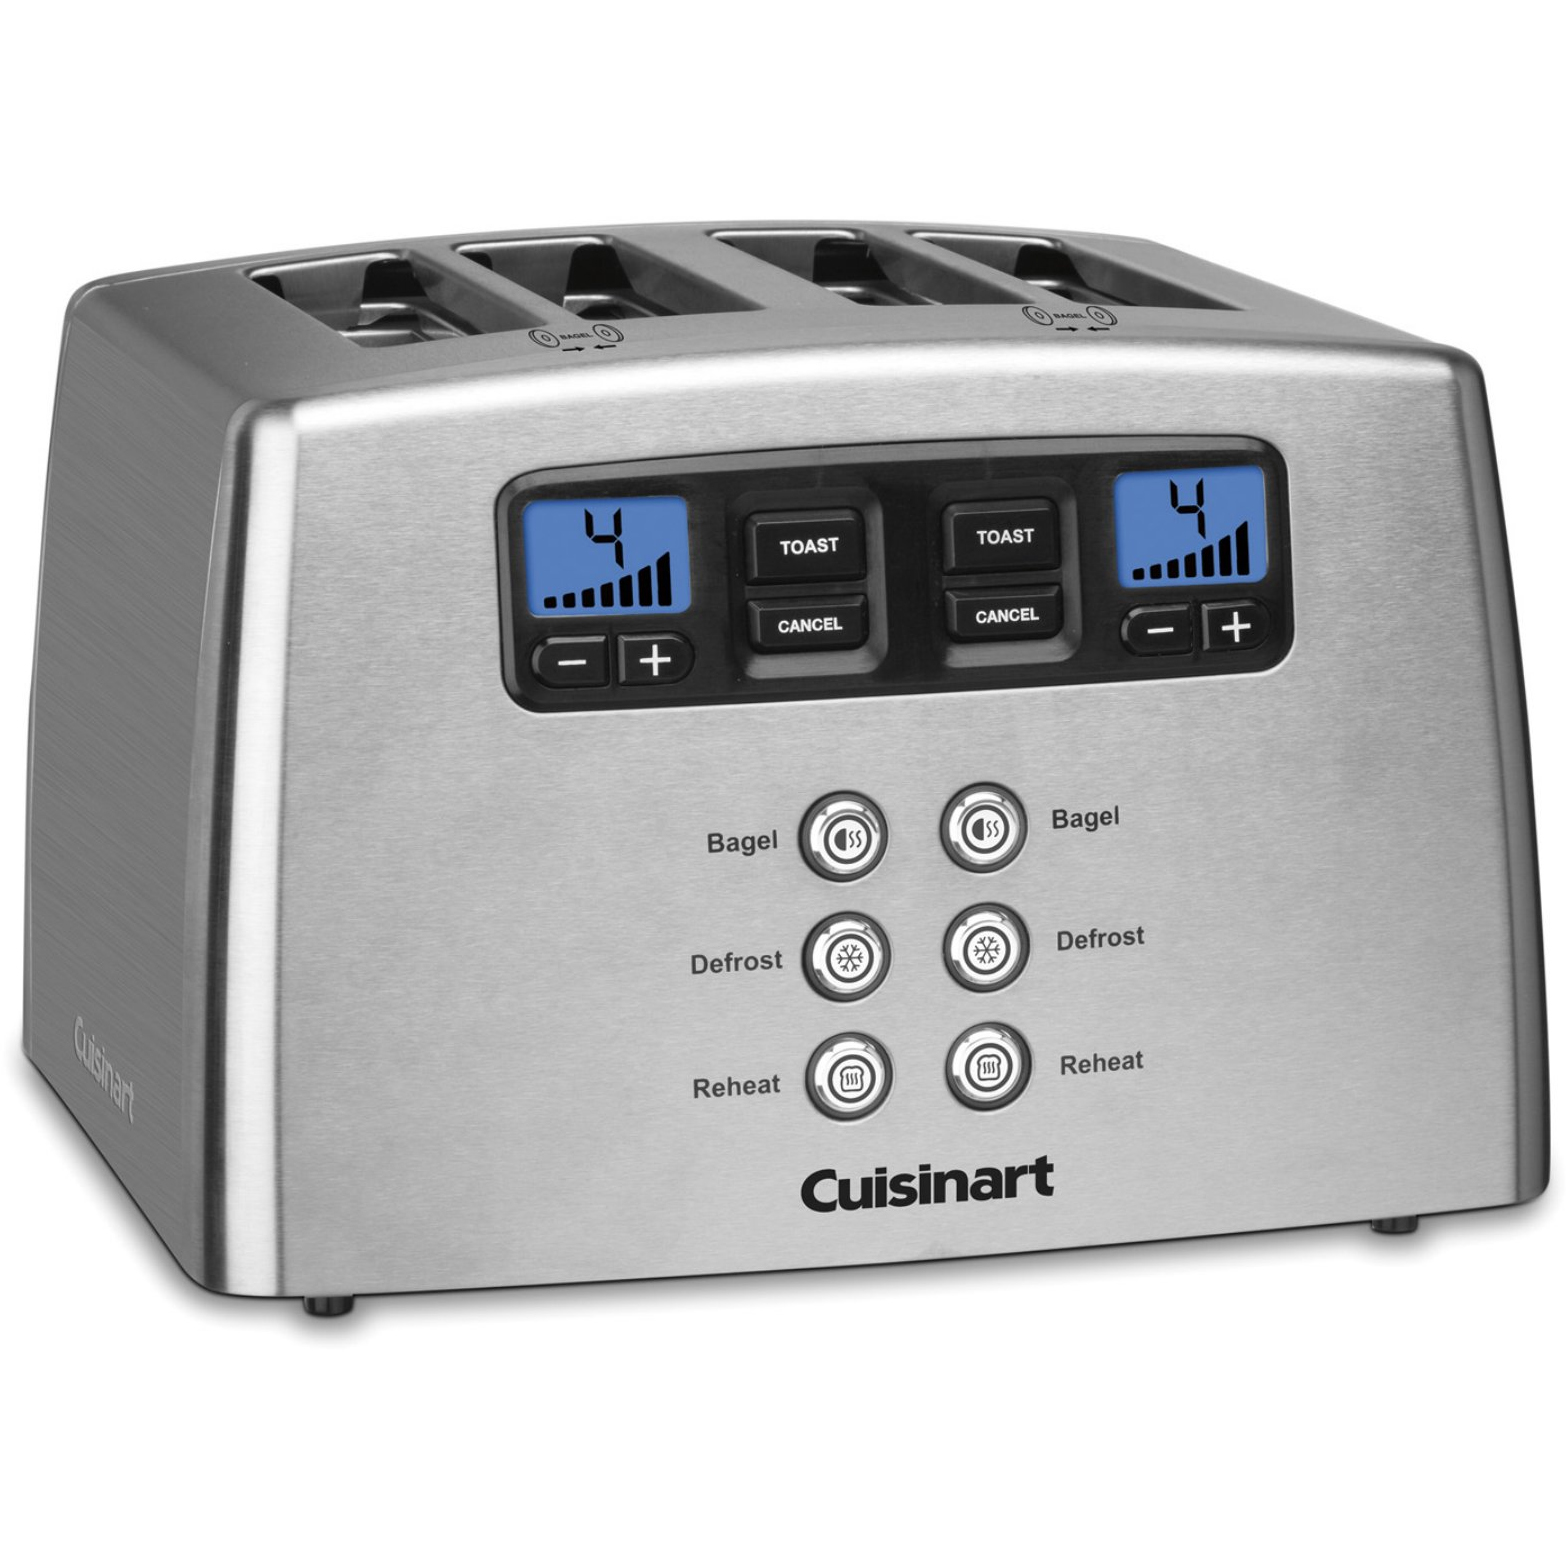 Cuisinart Cpt-440 Touch To Toast Leverless 4-slice Grille-pain